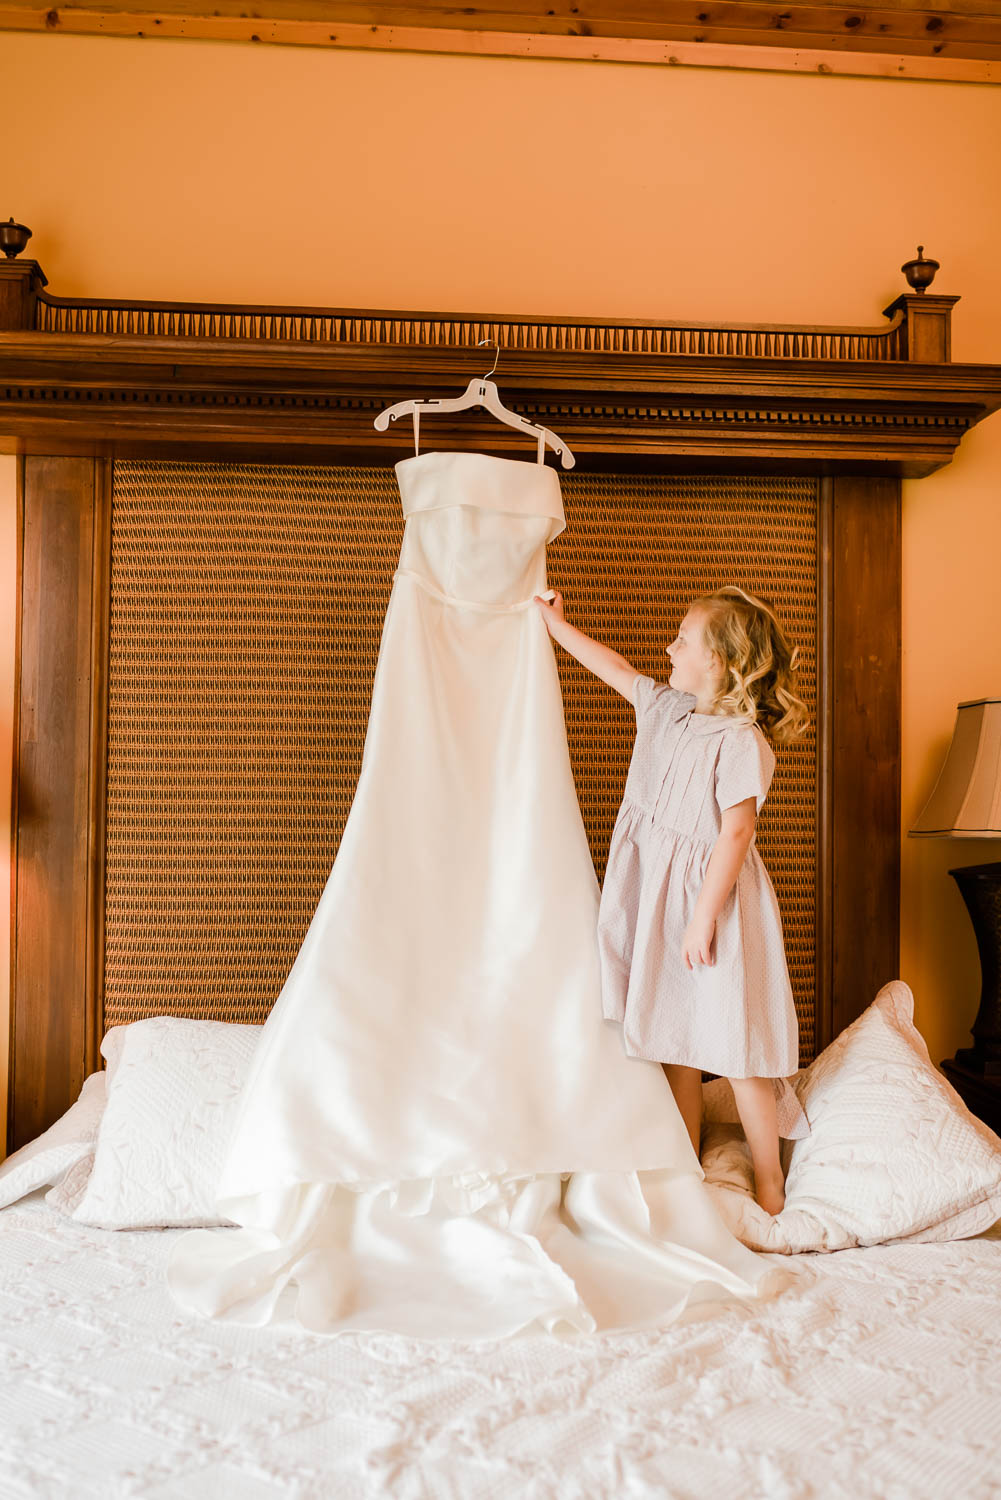 small child looking up at a wedding dress hanging above a bed